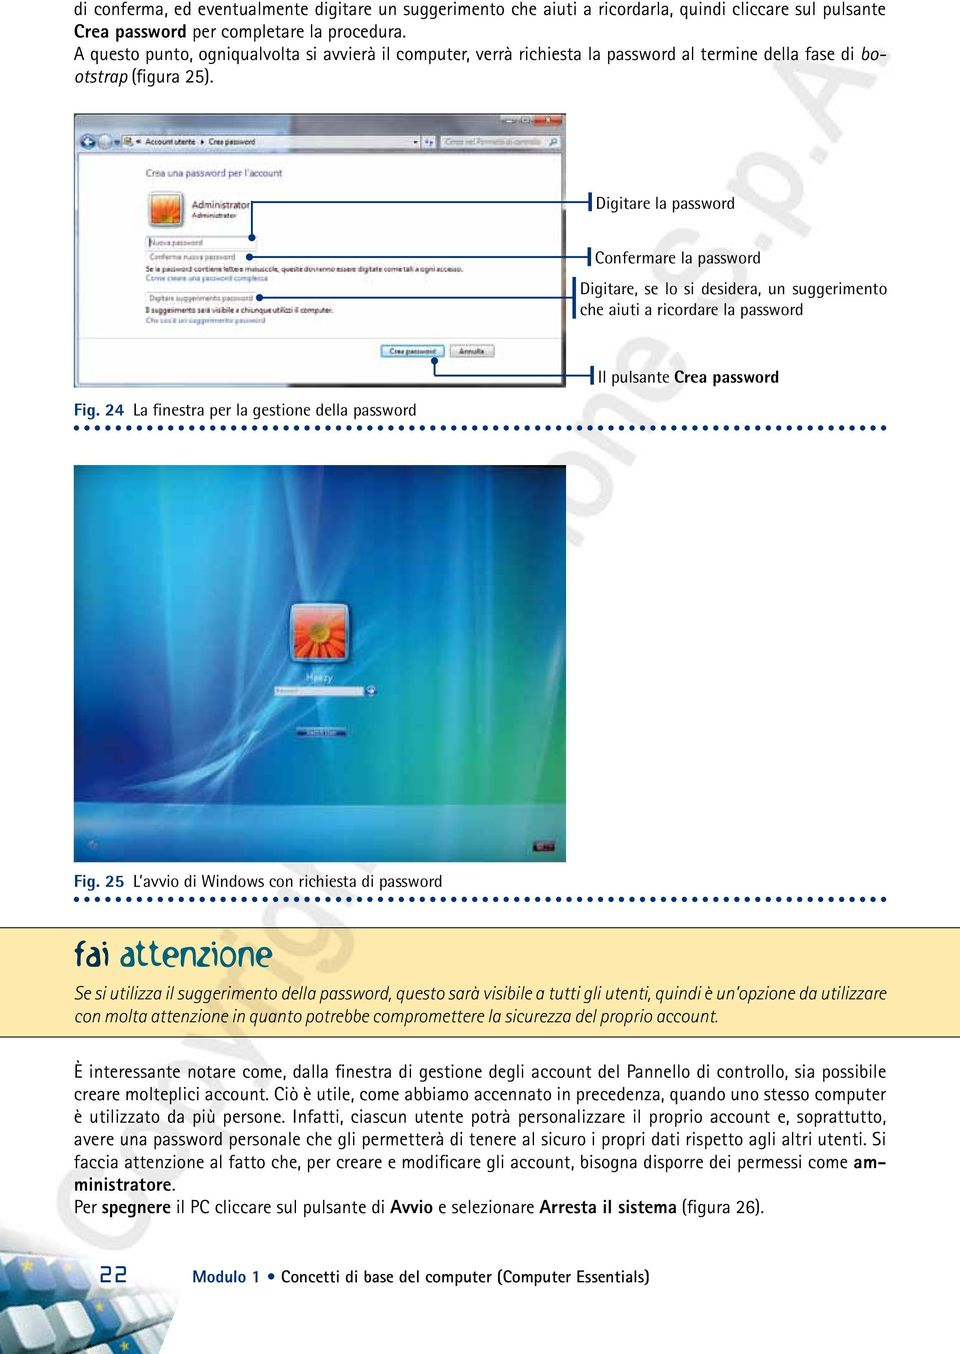 Digitare la password Confermare la password Digitare, se lo si desidera, un suggerimento che aiuti a ricordare la password Fig.